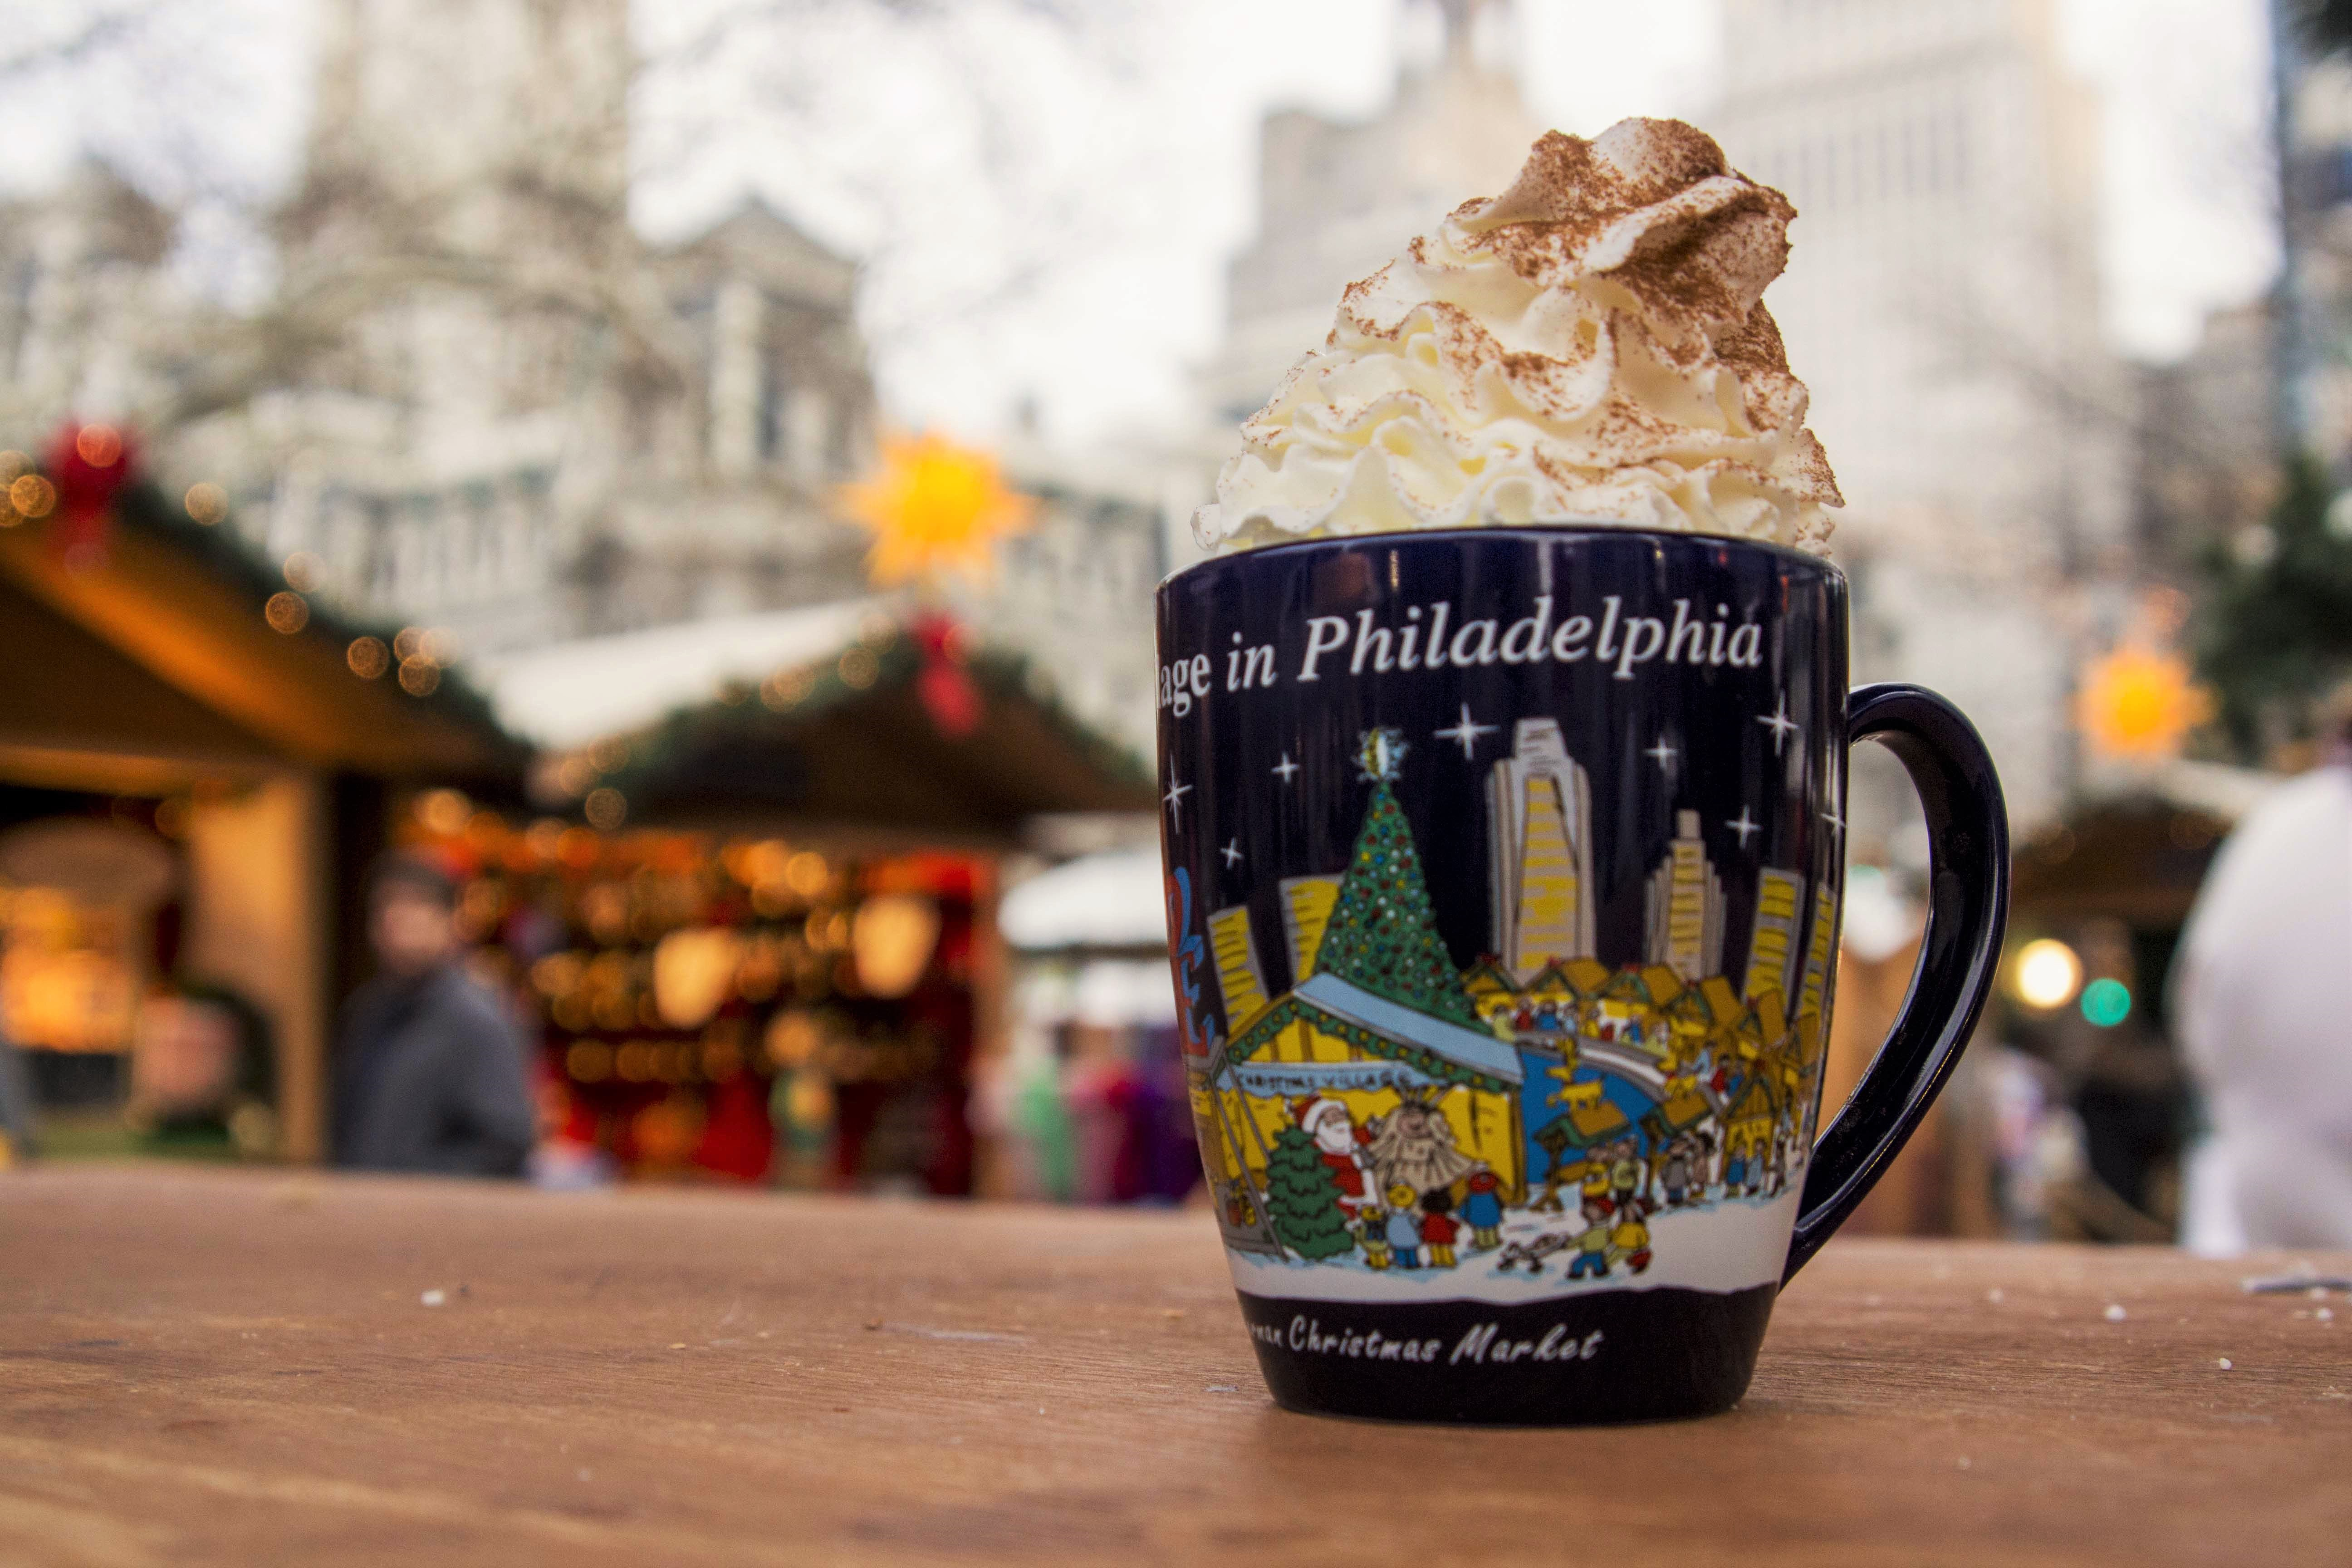 A cup of hot cocoa is pictured at Christmas Village.